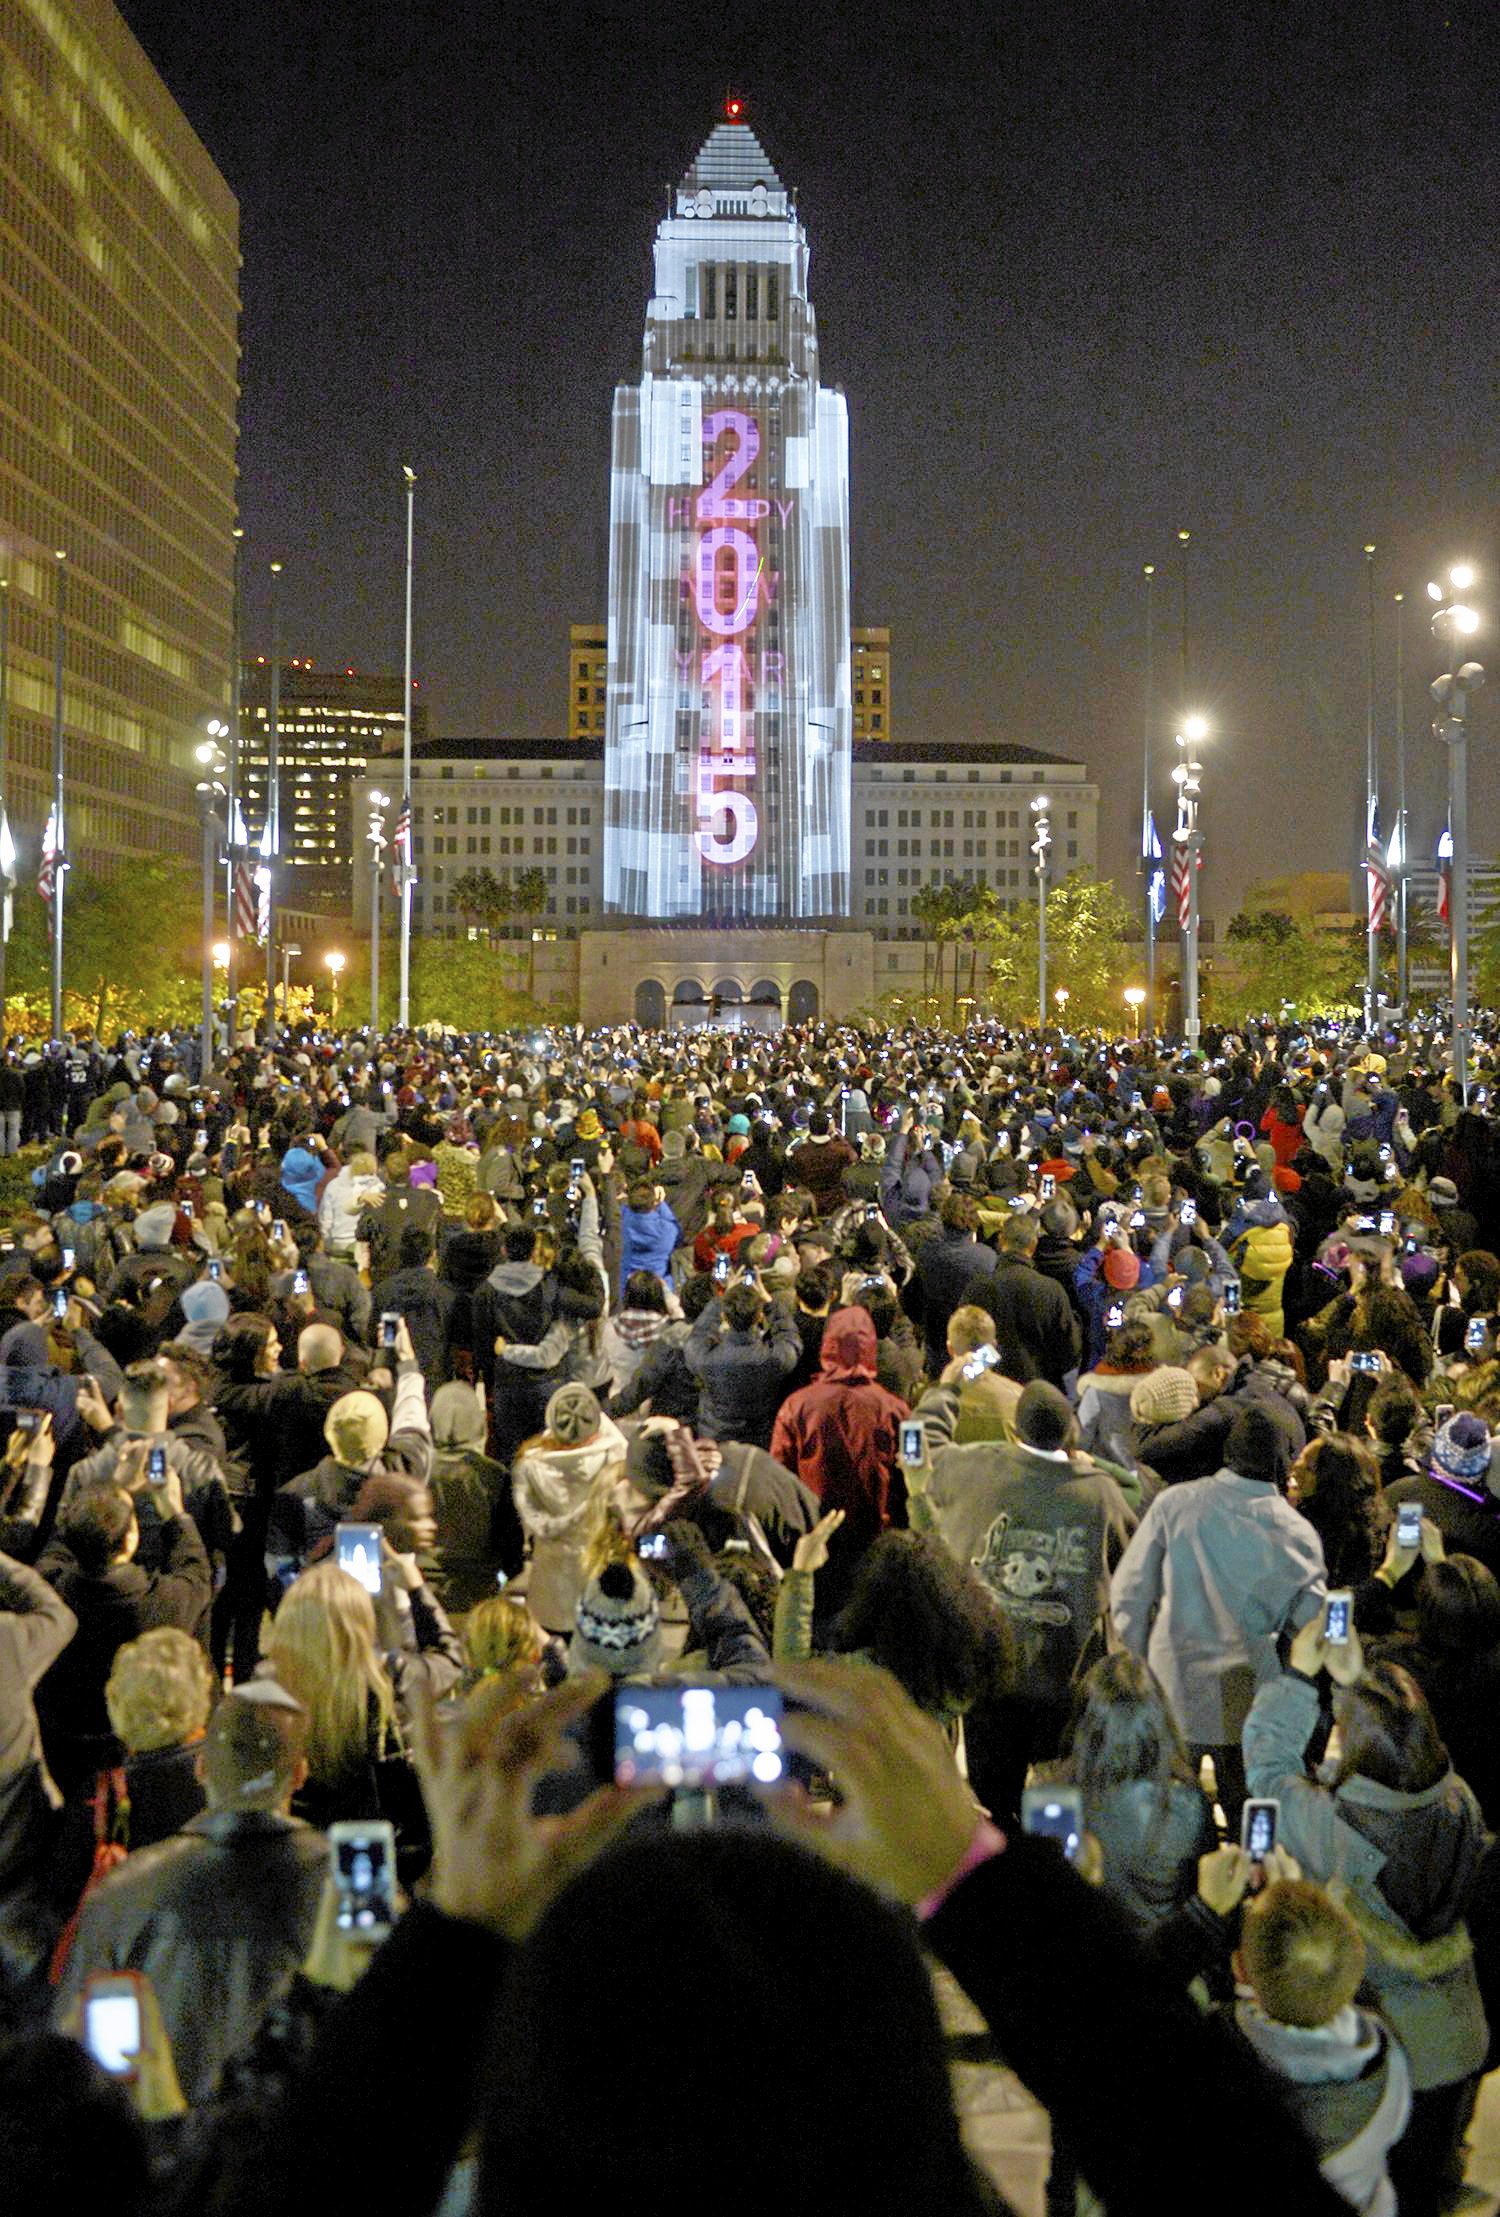 Los Angeles to host Grand Park New Year s Eve celebration     Daily News In this file photo  mages are projected onto the sides of Los Angeles City  Hall during the N Y E L A  event at Grand Park on New Year s Eve in Los  Angeles